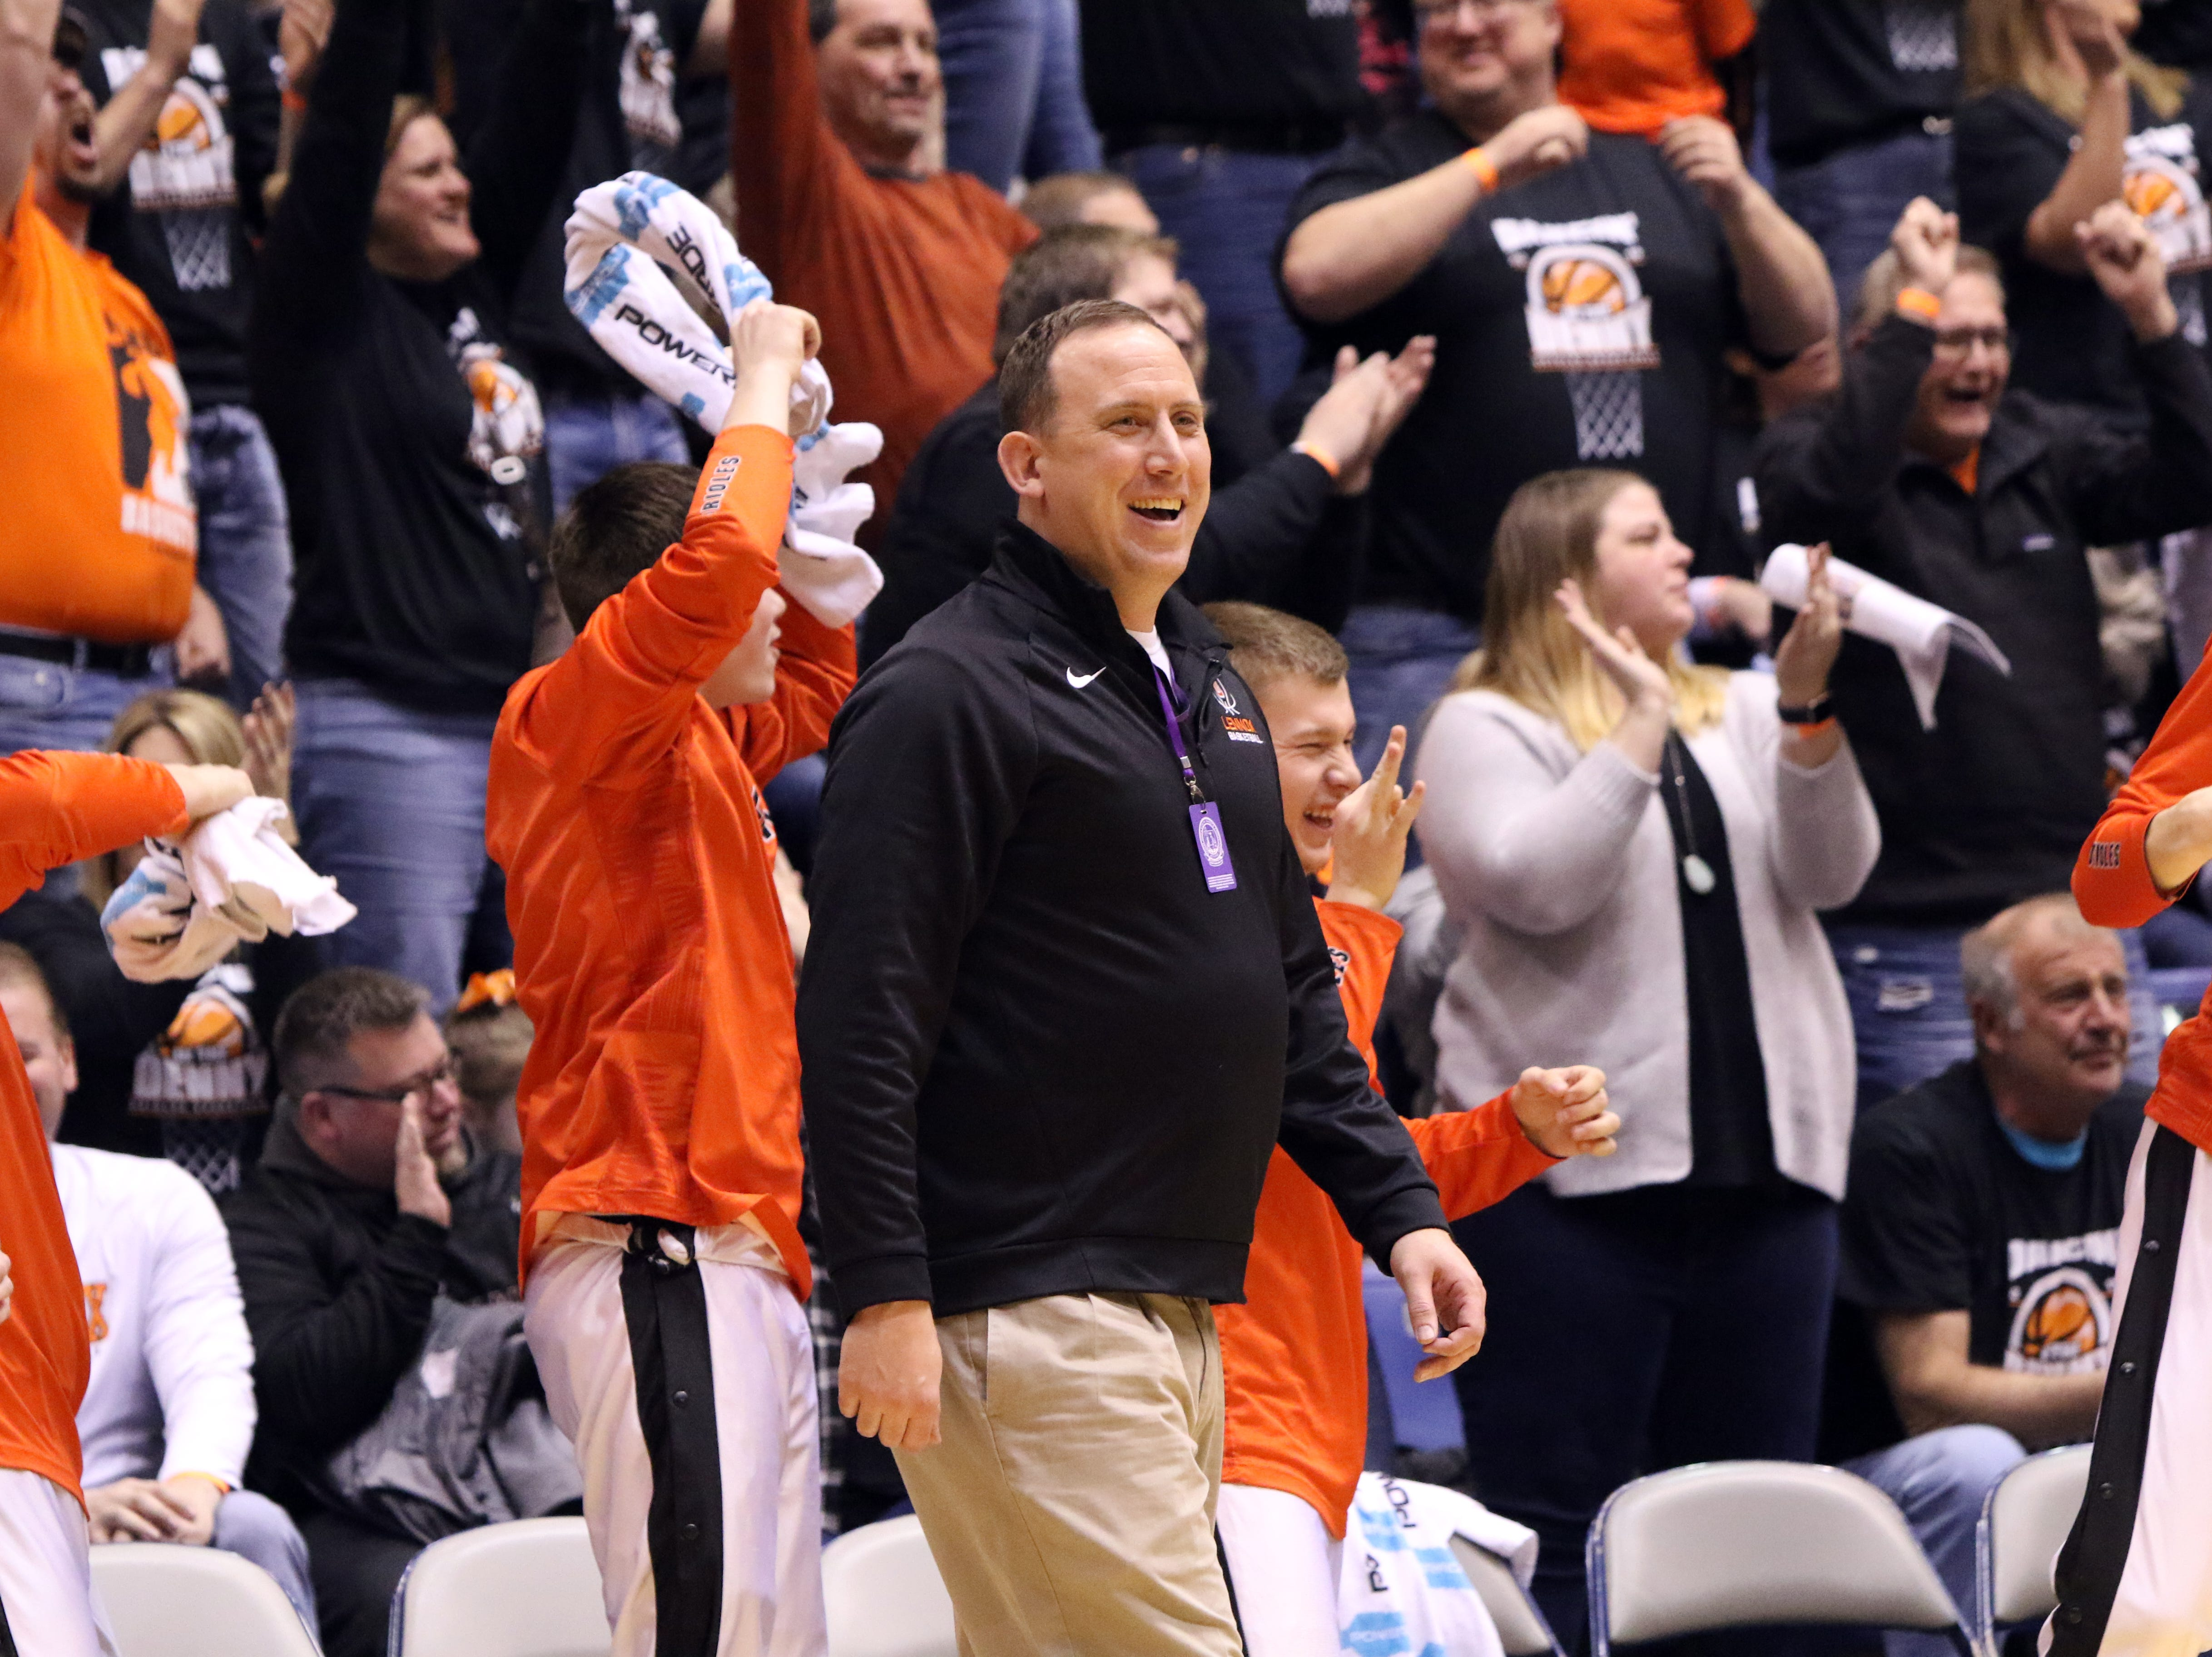 Lennox Head Coach, Paul McVey smiles after his team scores a basket against St Thomas More on Thursday at the Arena in Sioux Falls.